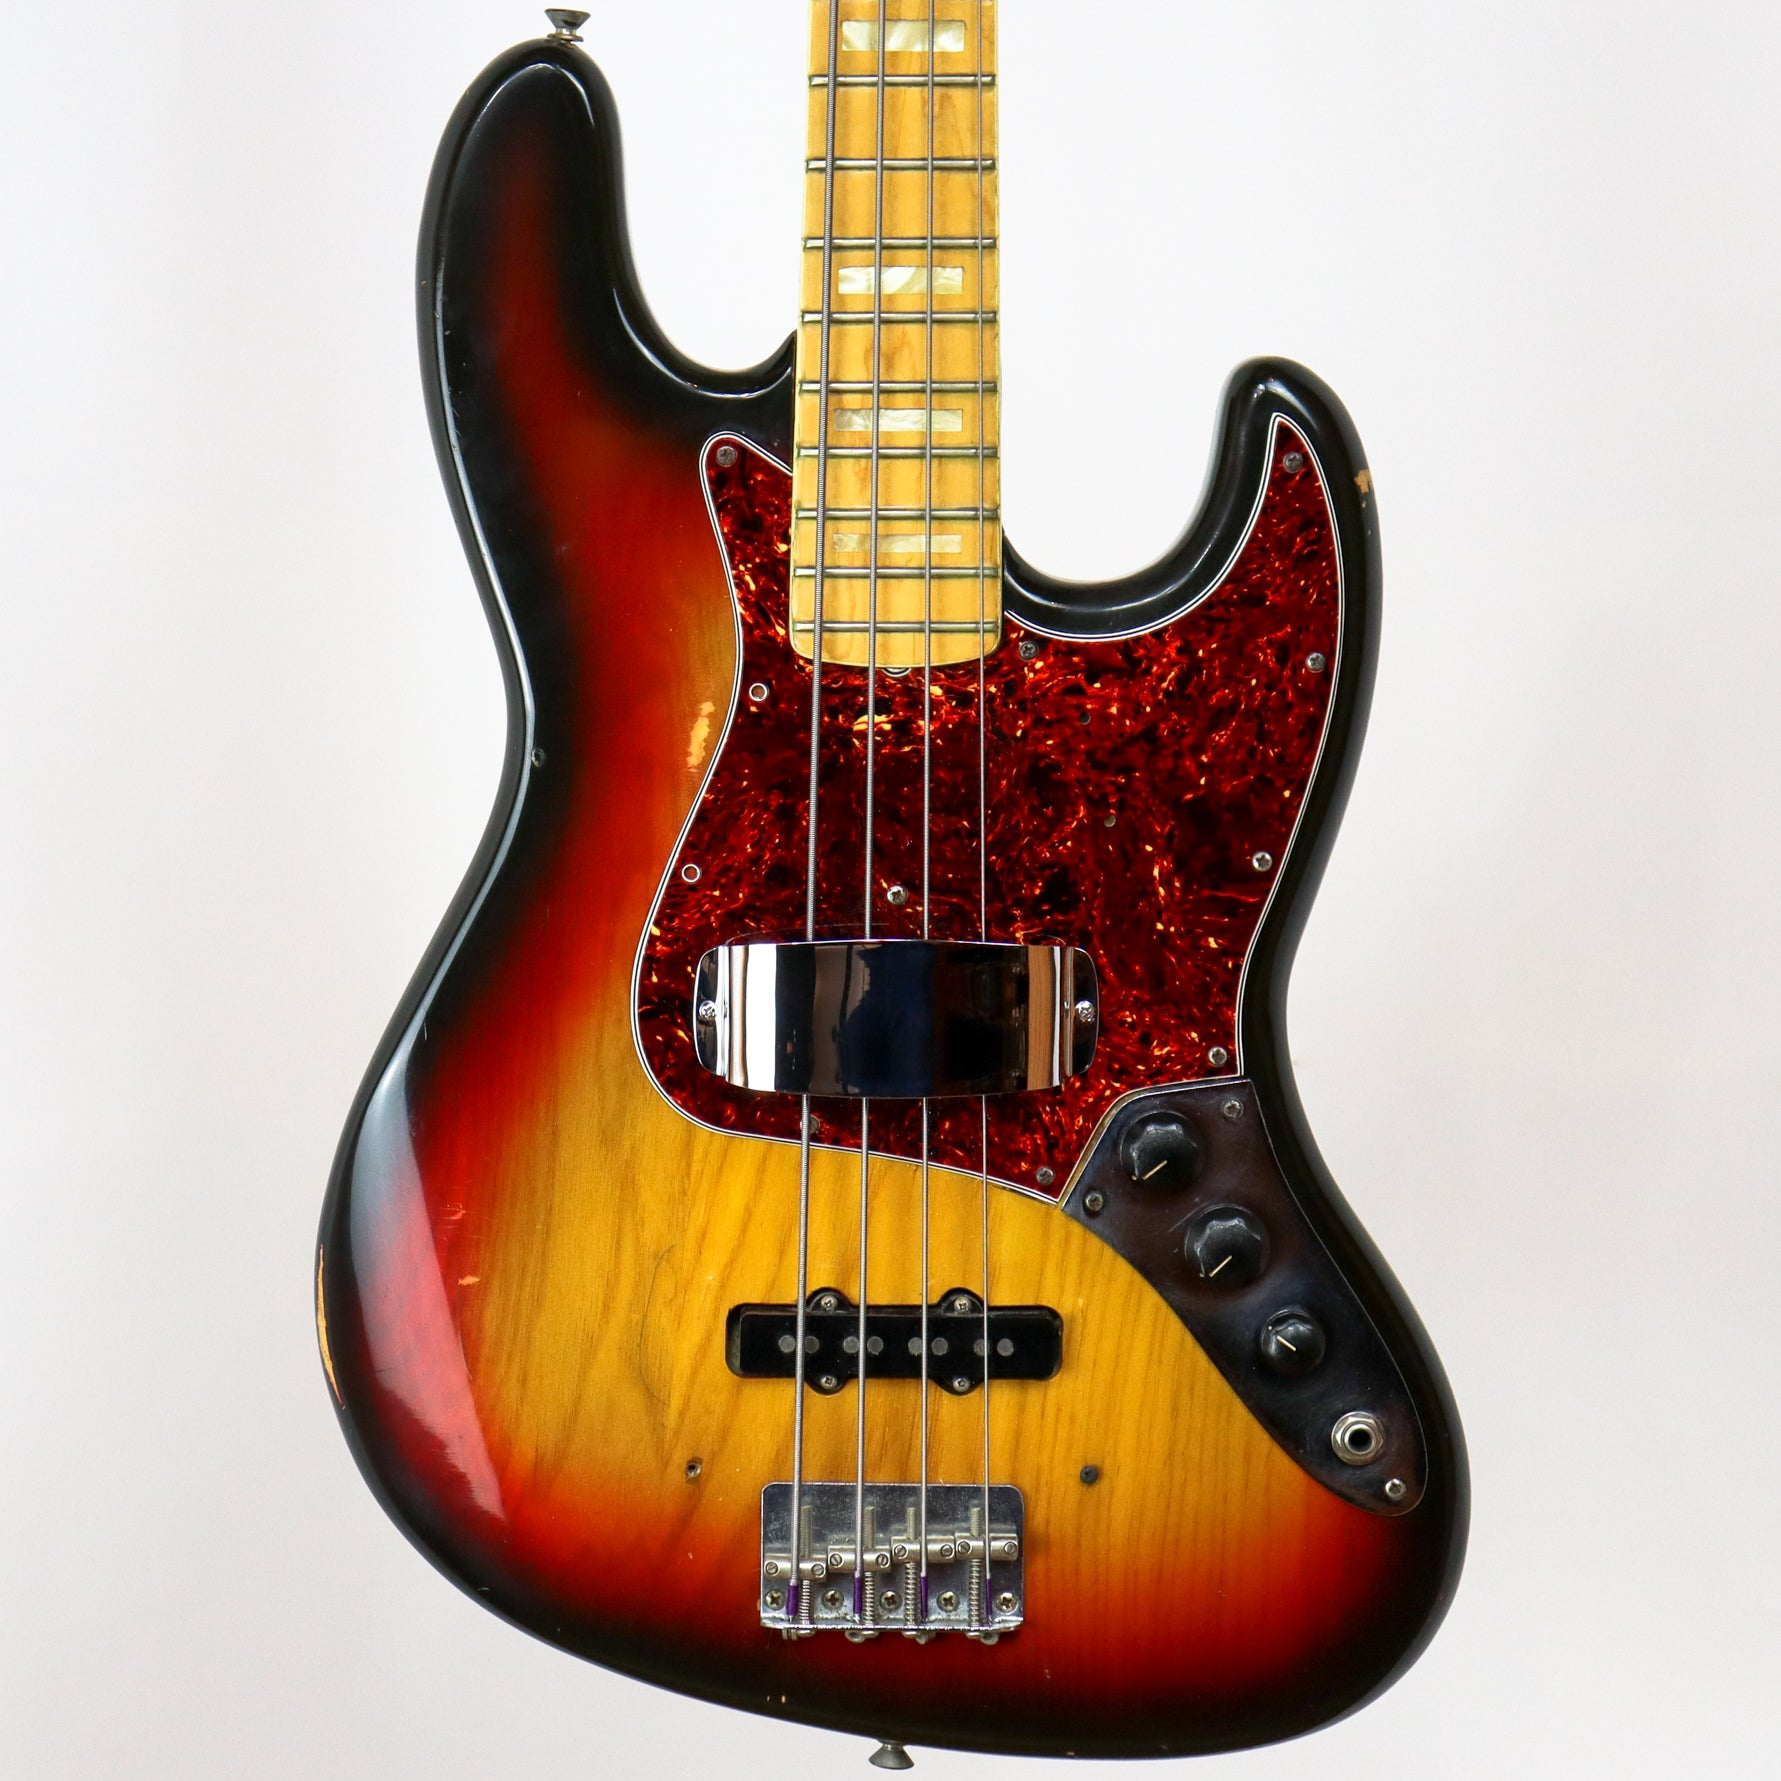 Fender 1974 Jazz Bass in Sunburst